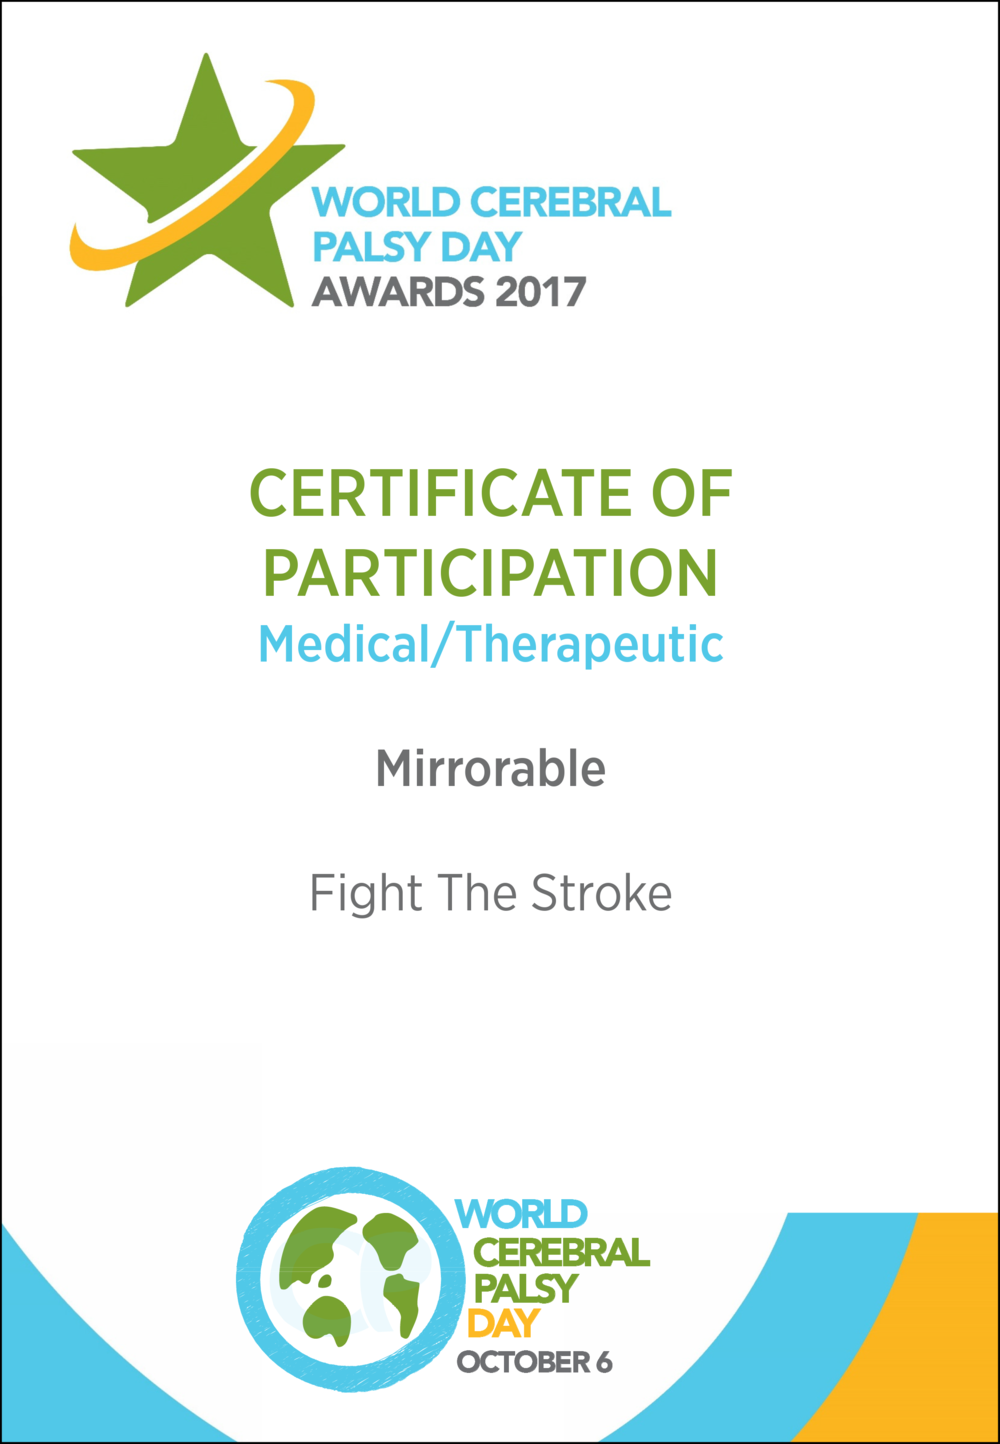 World Cerebral Palsy Day Awards 2017 Certificate: Fight The Stroke